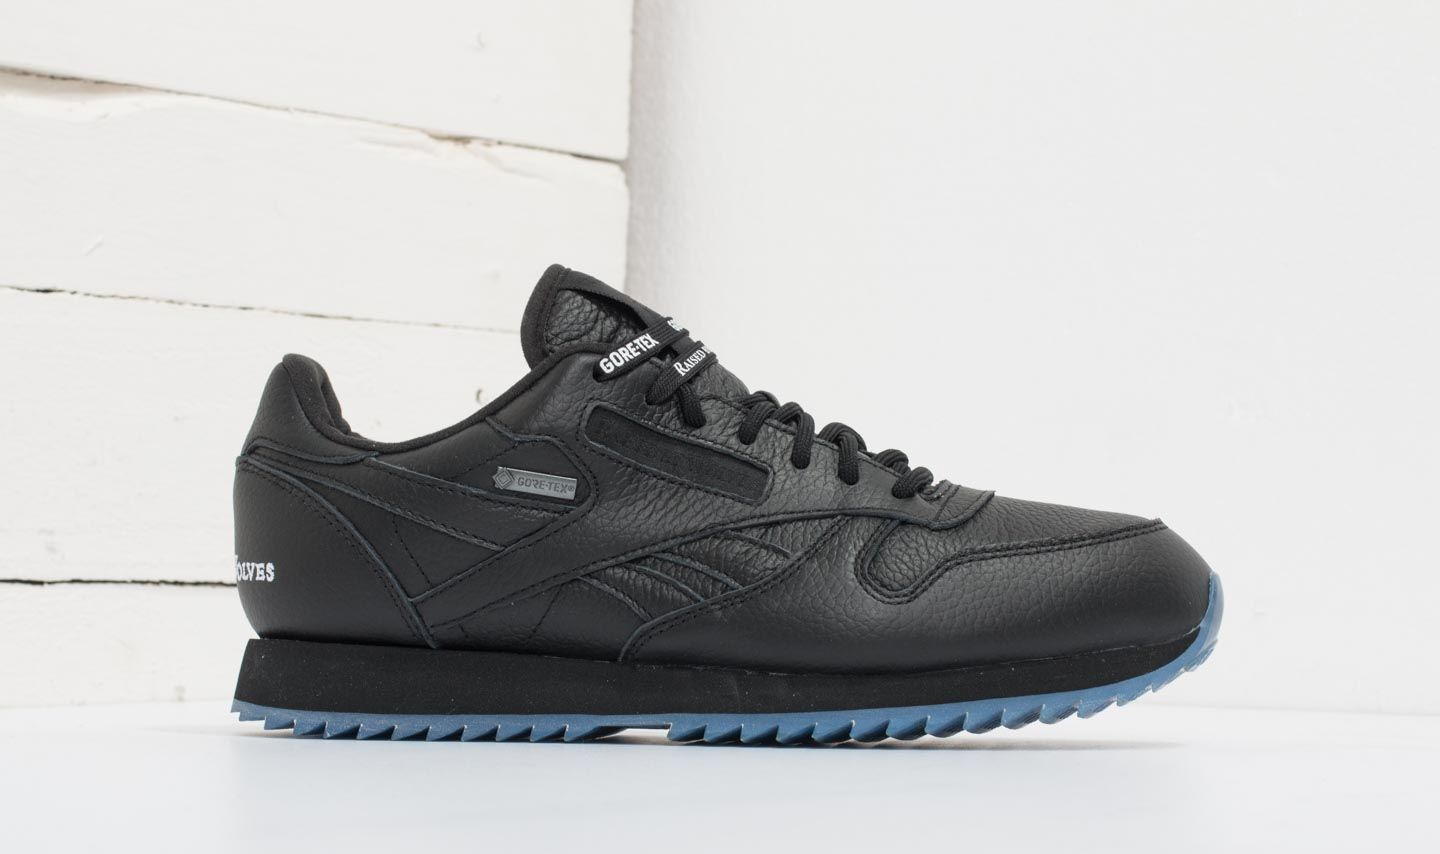 c792bb2162e Reebok x Raised by Wolves Classic Leather Ripple Gore-Tex Black  White-Ice